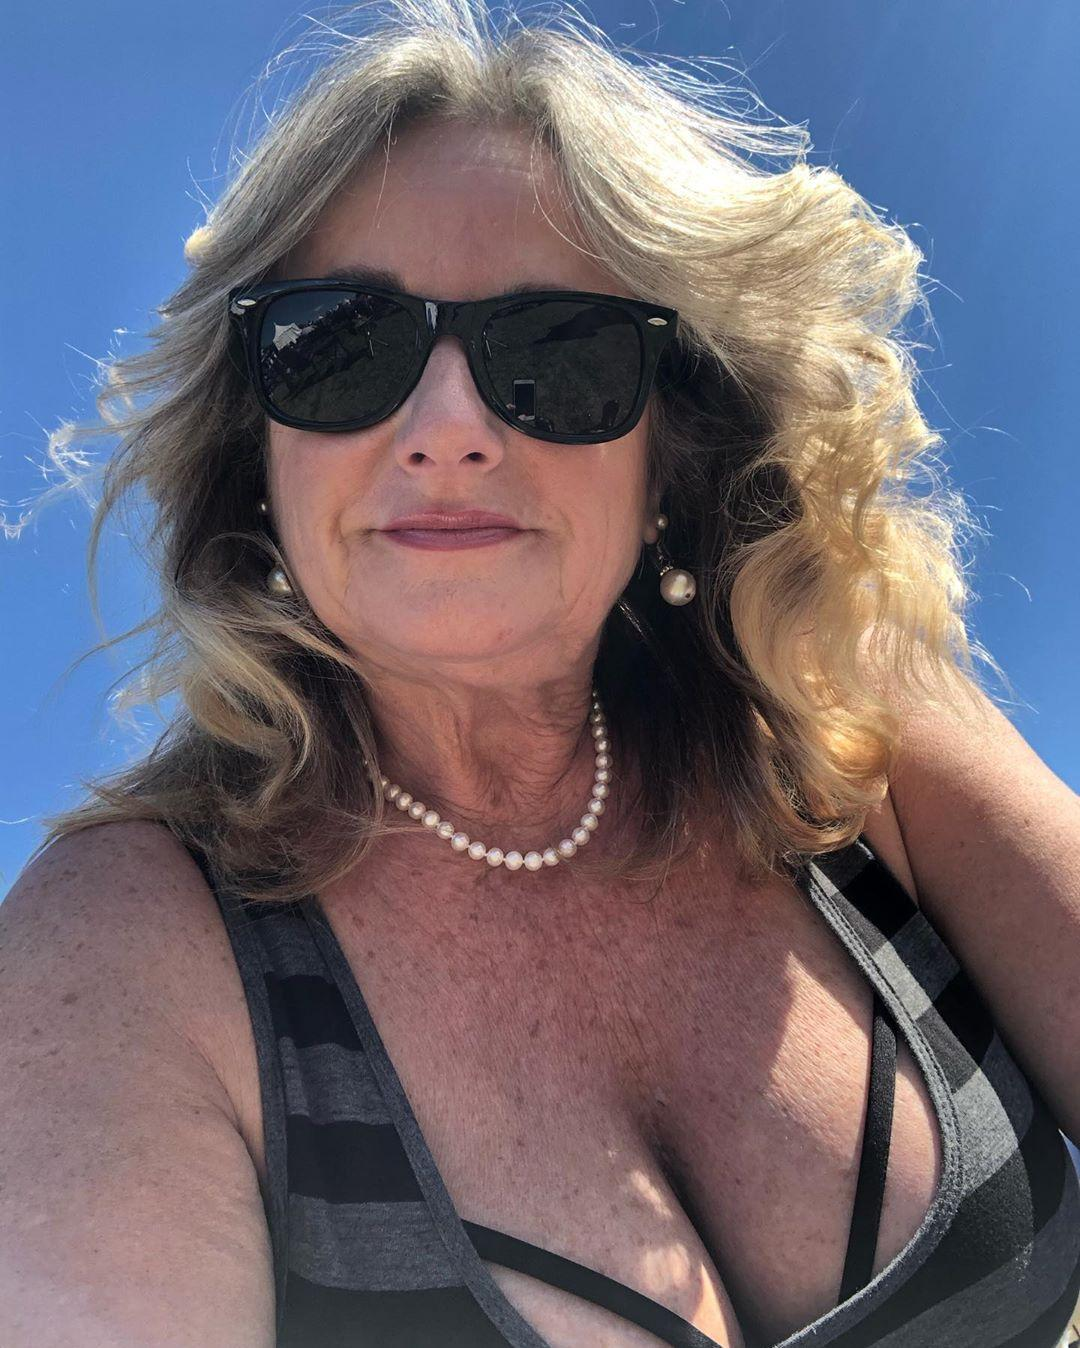 60 years old widdow doing sexy tits selfies on insta picture 6